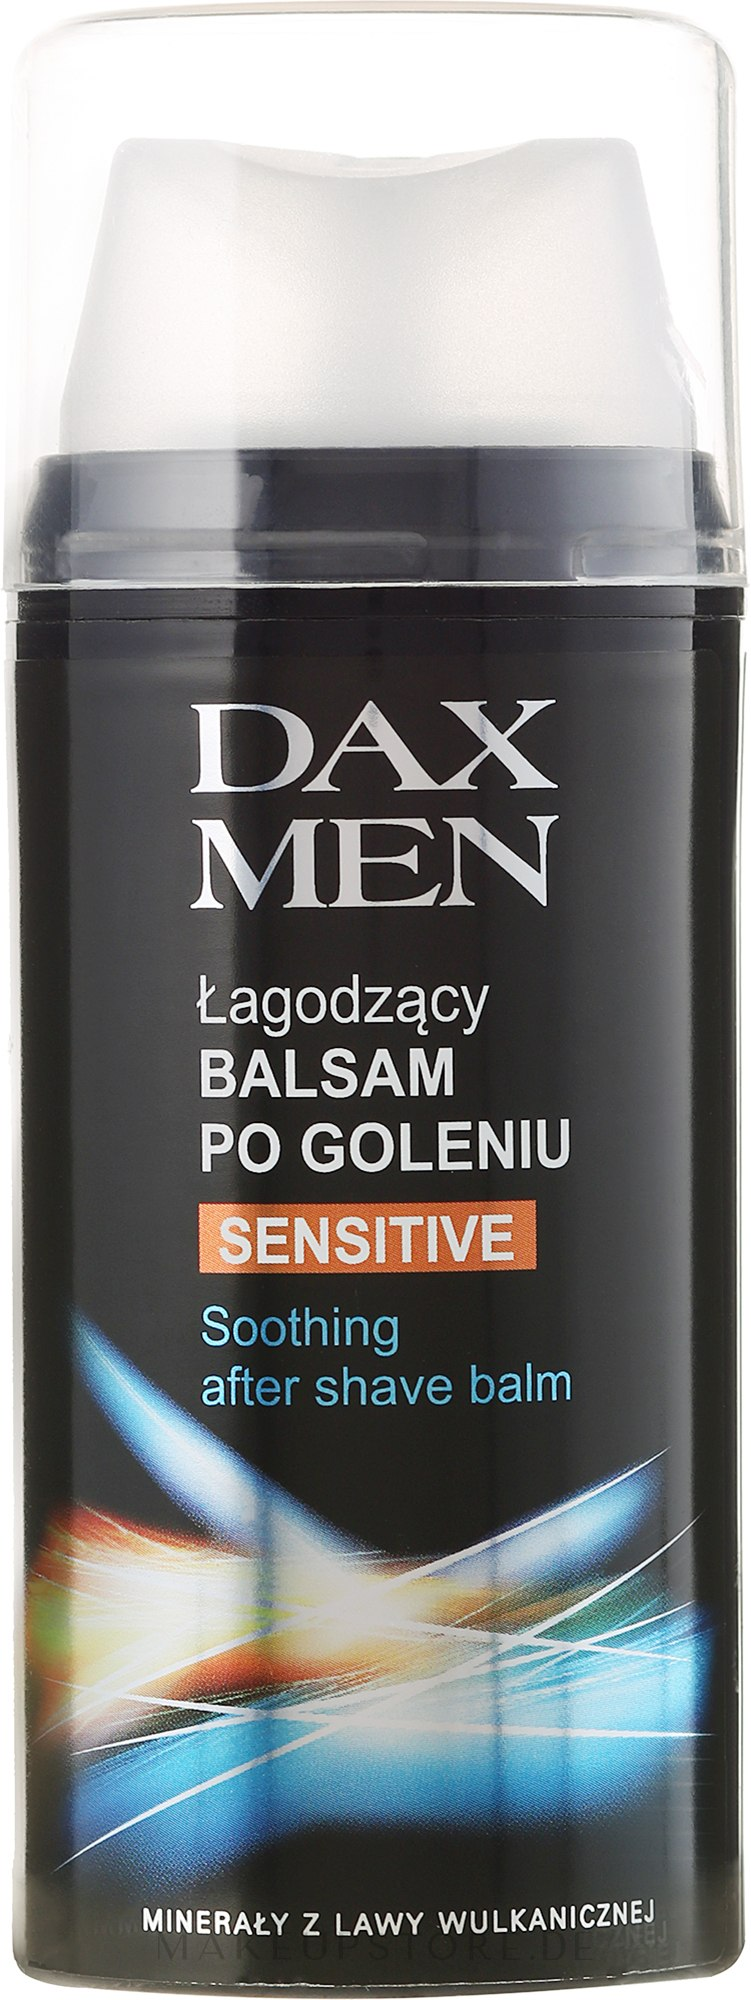 After Shave Balsam für empfindliche Haut - Dax Men Sensitive Soothing After Shave Balm — Bild 100 ml